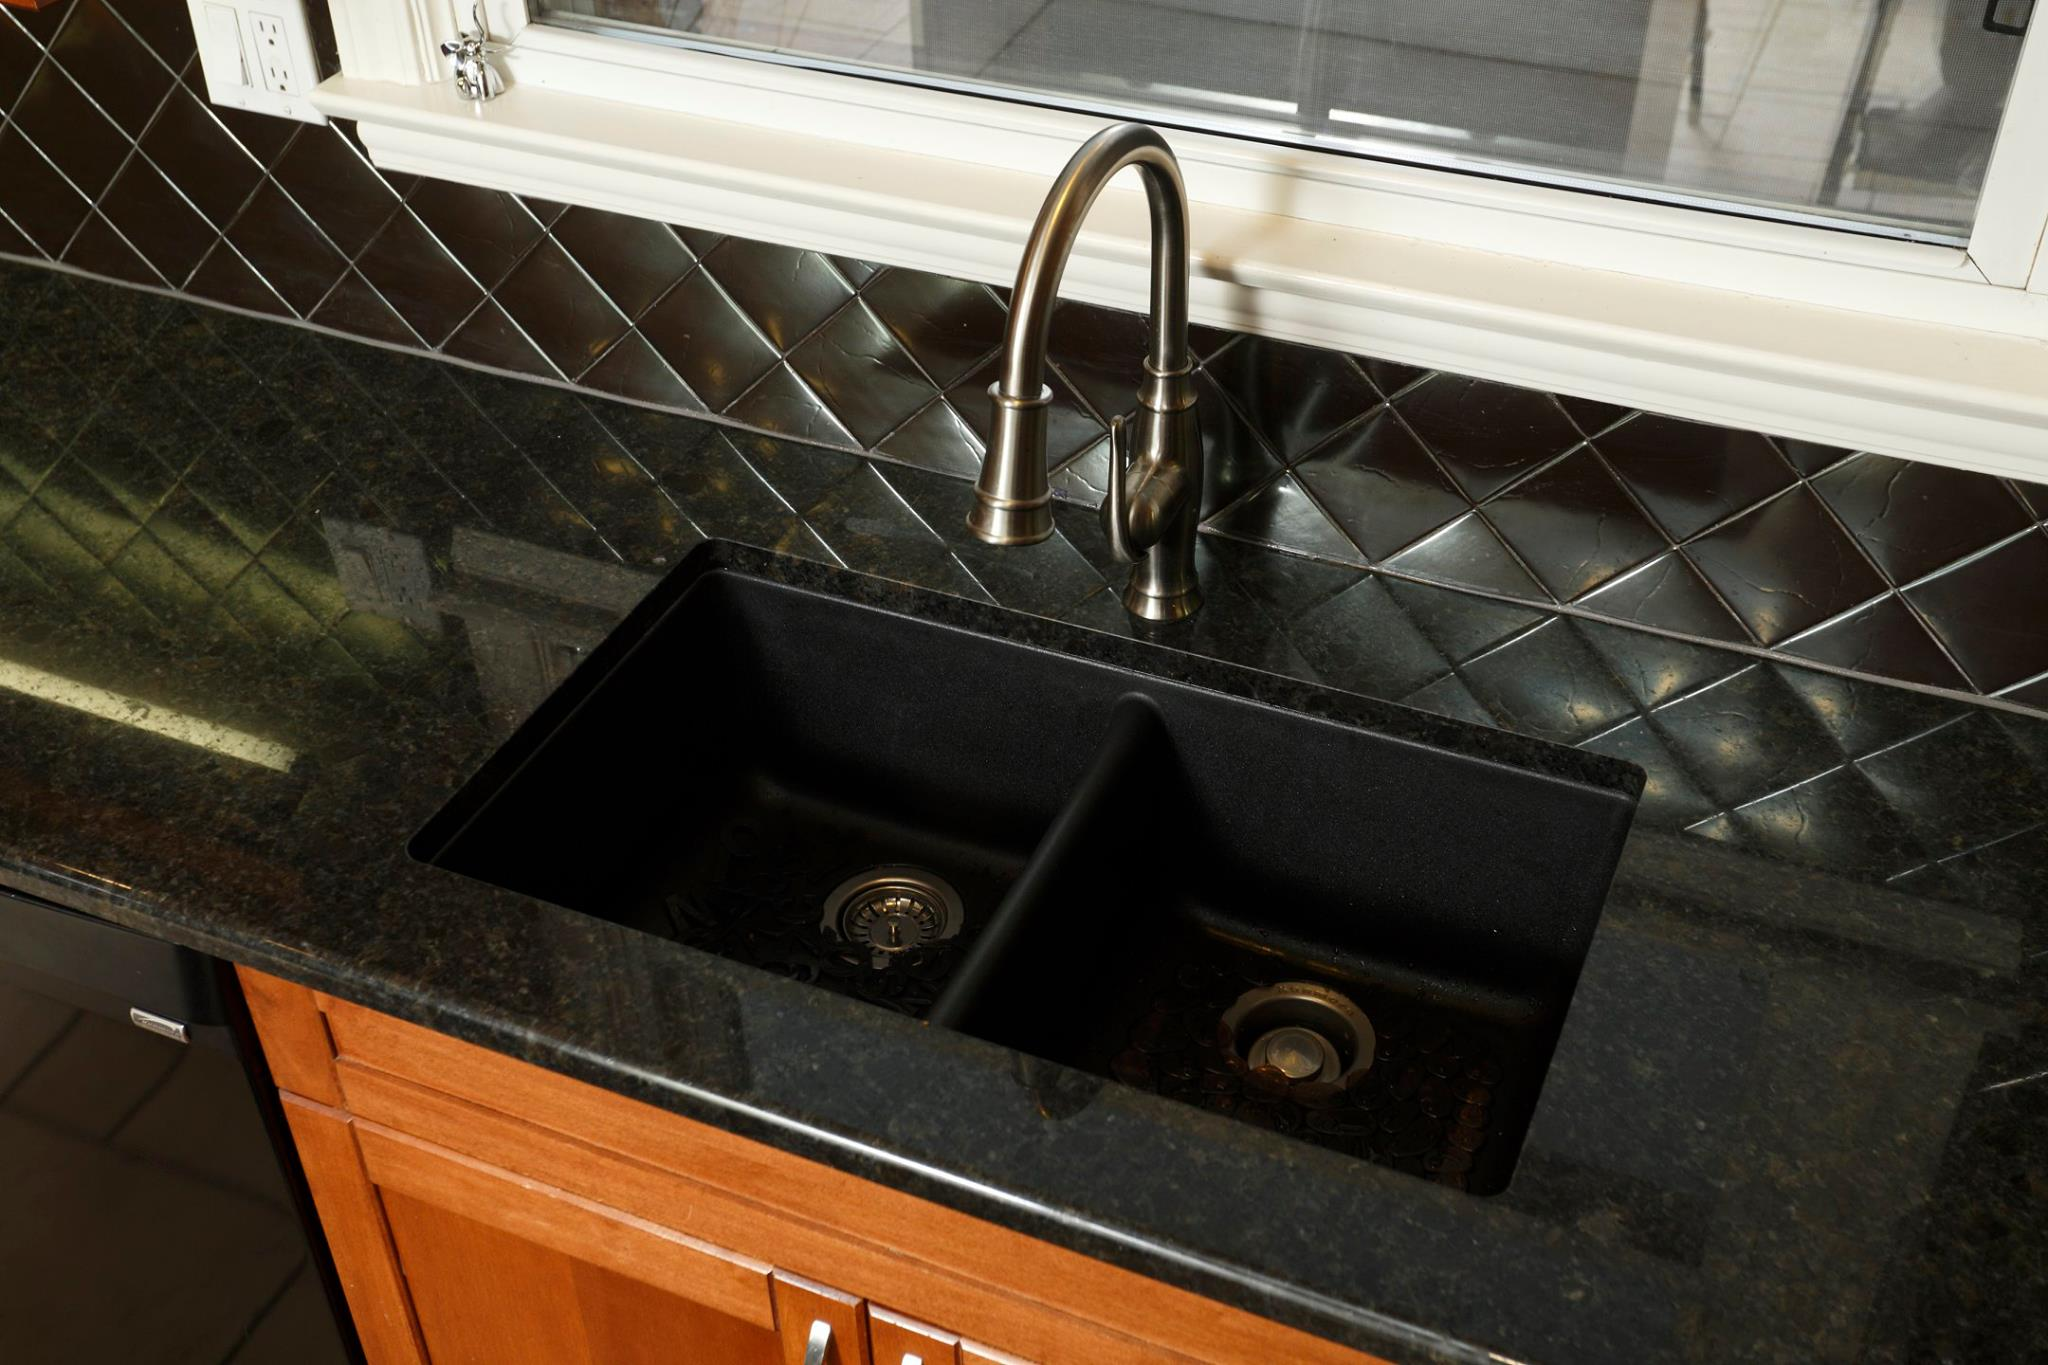 Before & After Kitchen Countertops | Progressive Countertop - London on